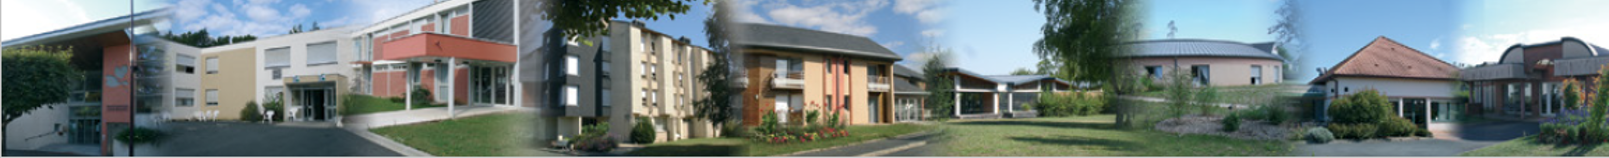 Photo de EHPAD Site principal